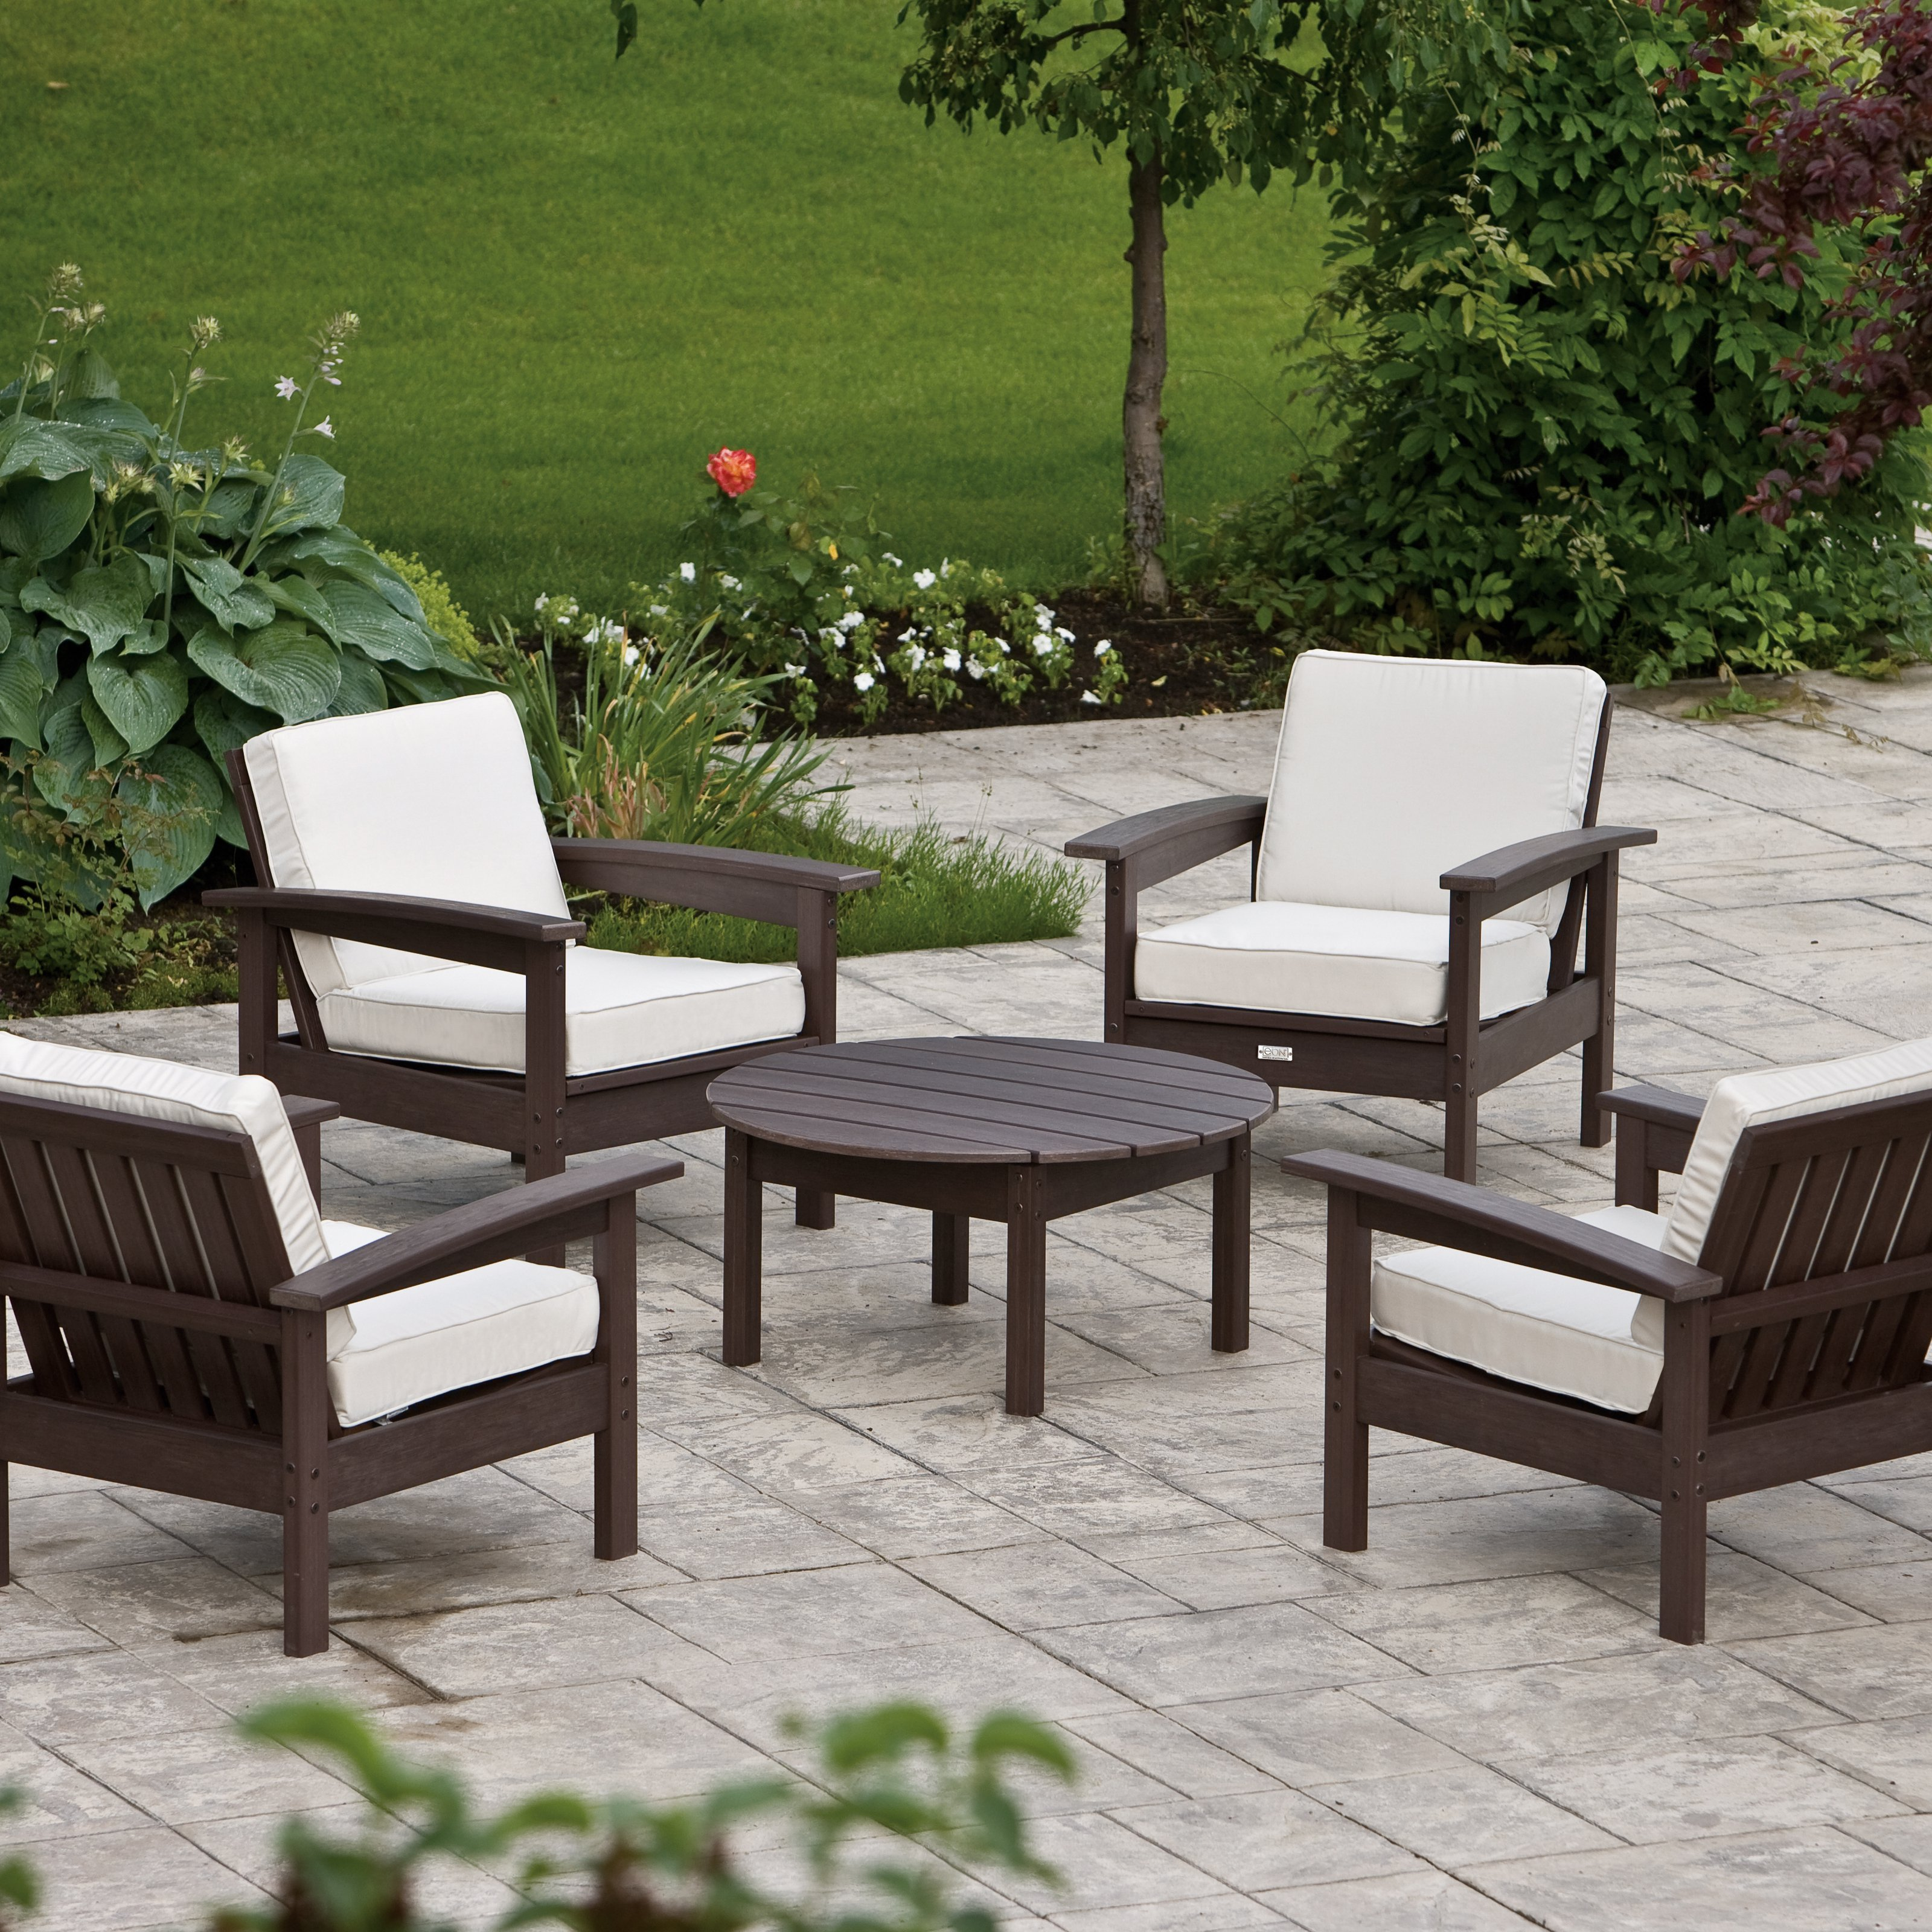 patio conversation sets eon resin outdoor conversation set conversation patio sets at DJDHBSA